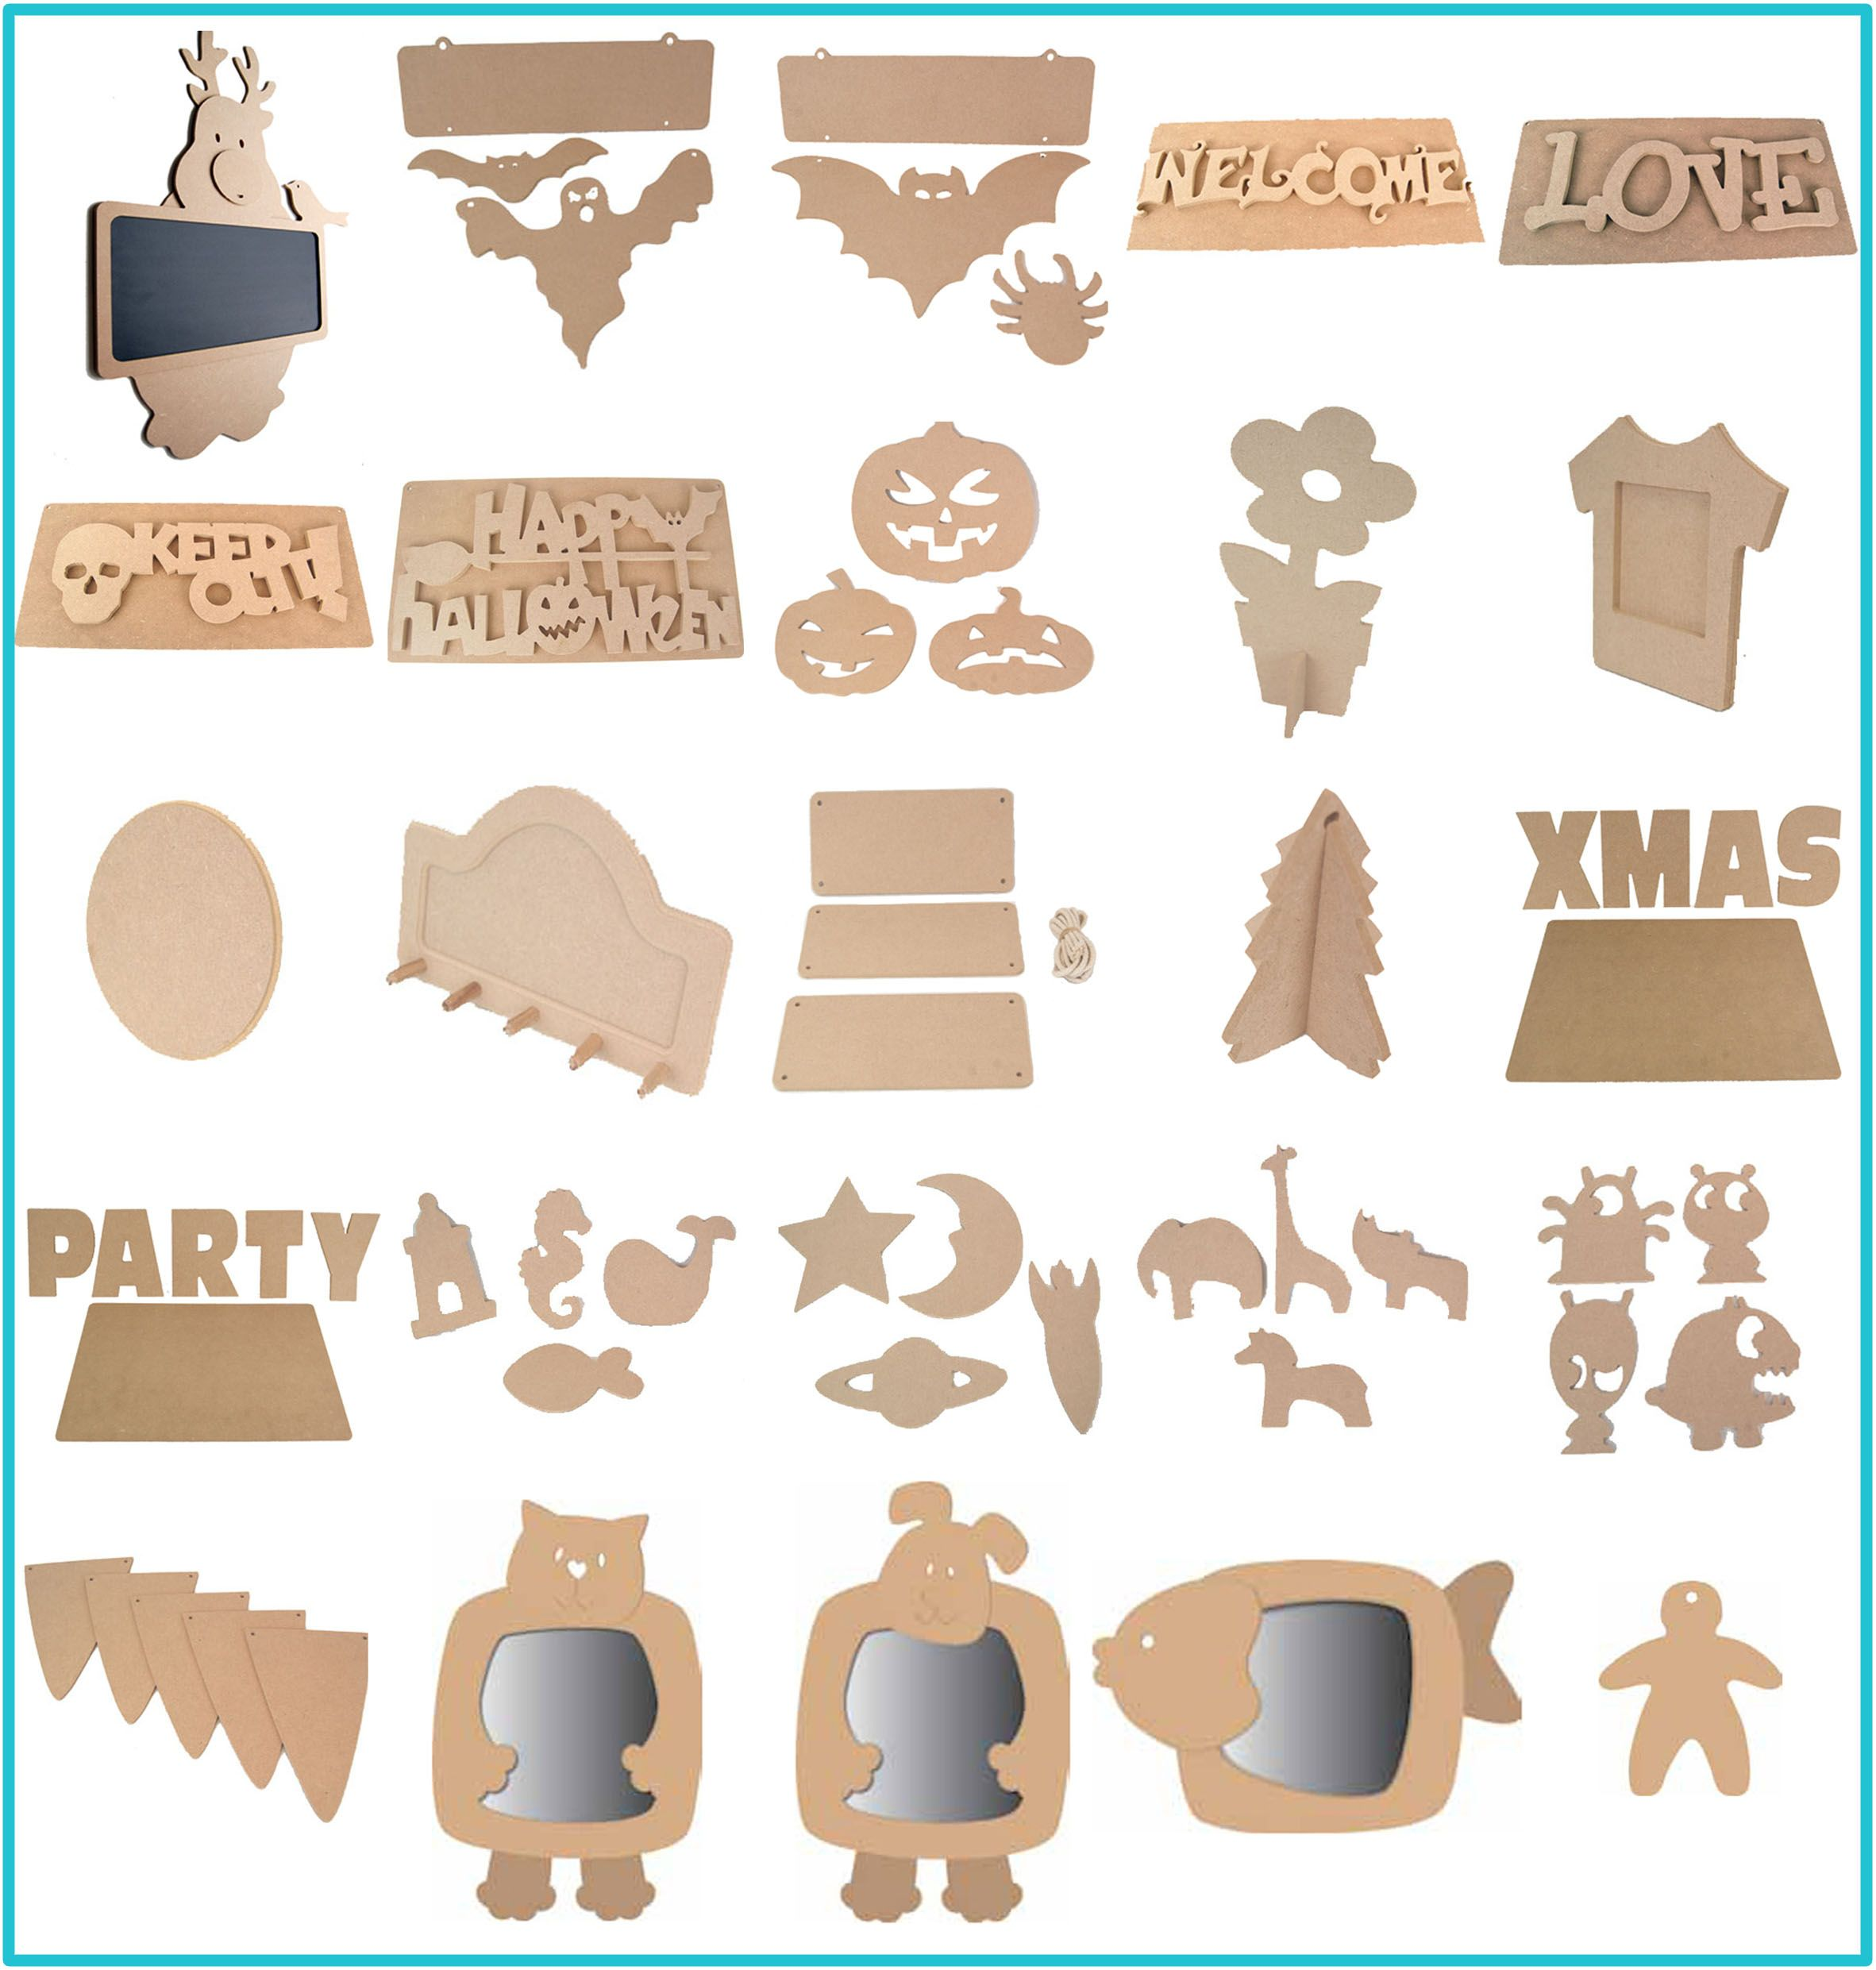 14+ Large wood shapes for crafts ideas in 2021